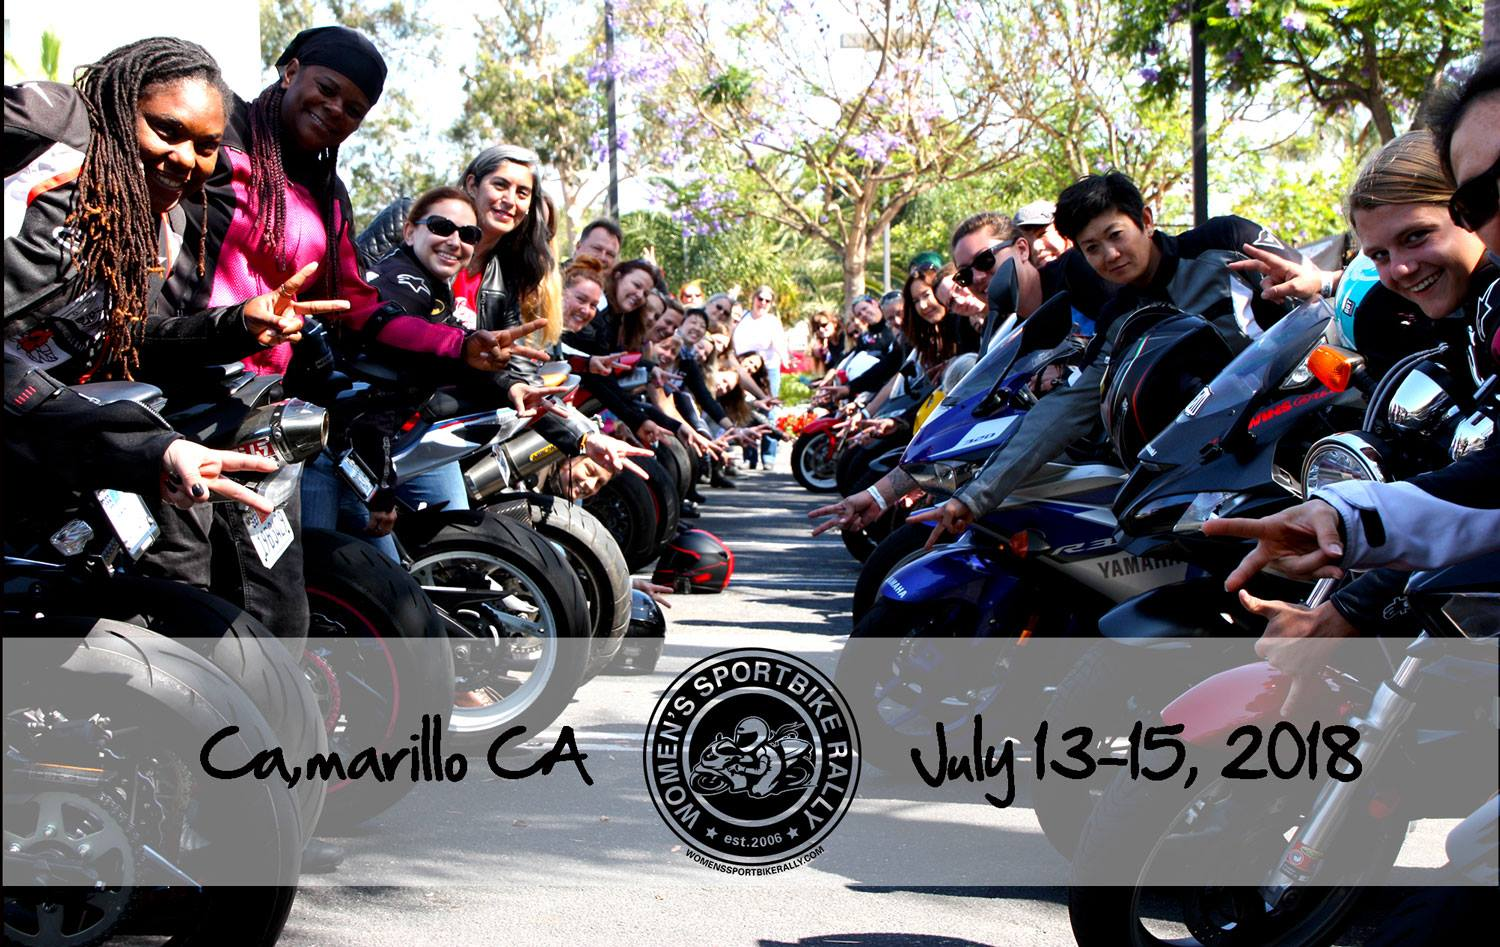 13th Annual Women's Sportbike Rally (WSR) West